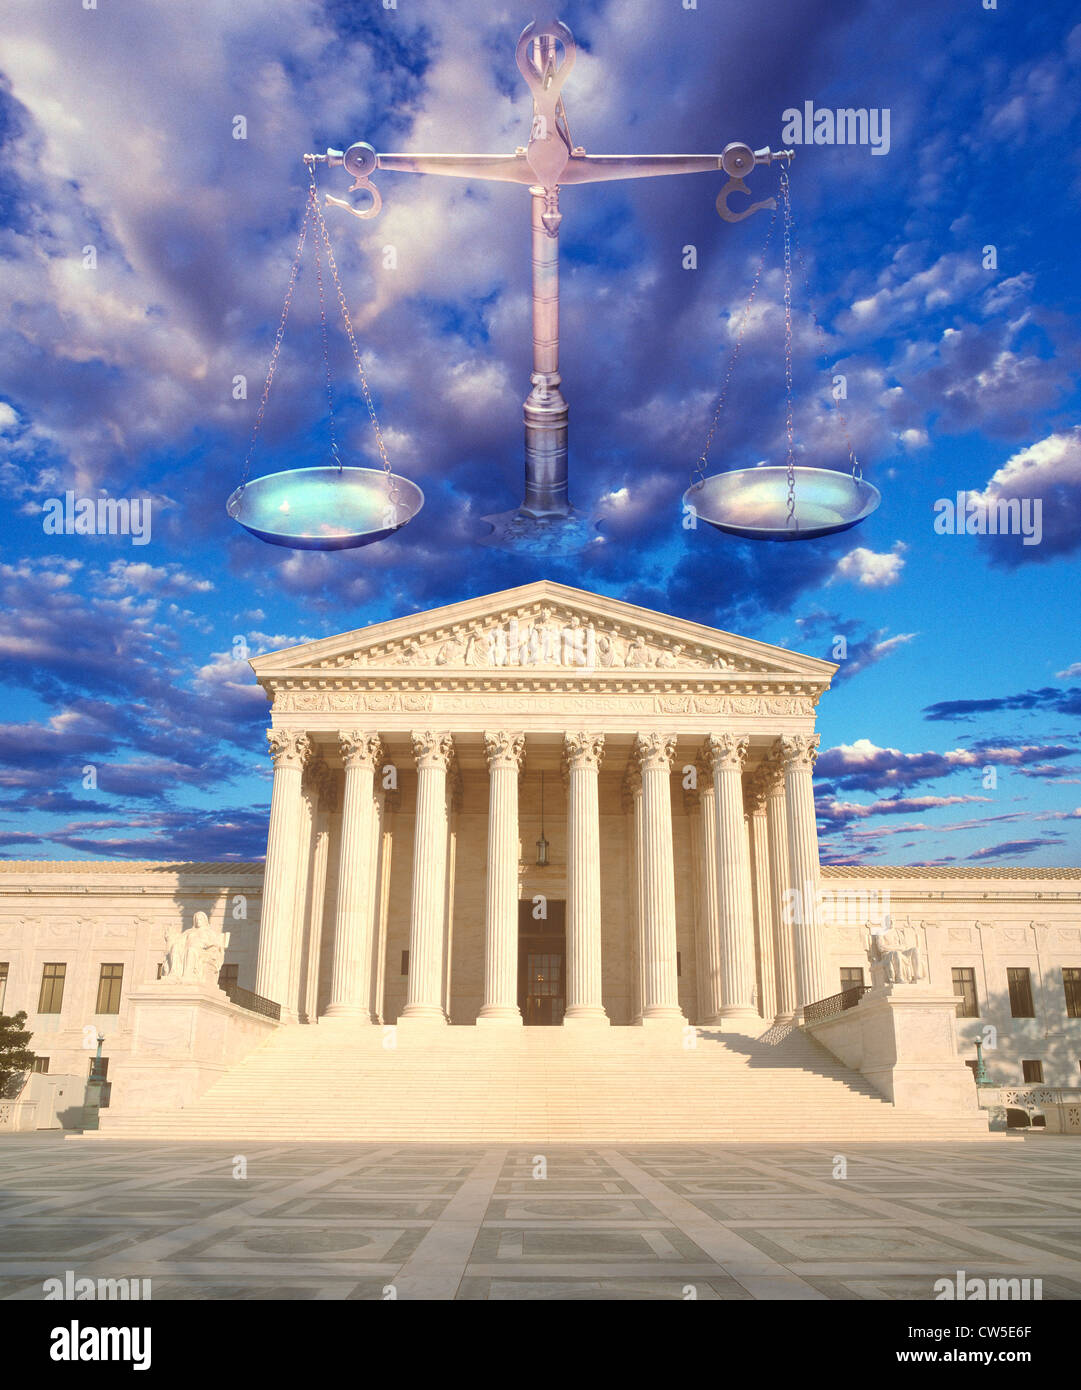 Composite image of the U.S. Supreme Court, Scales of Justice and blue sky - Stock Image